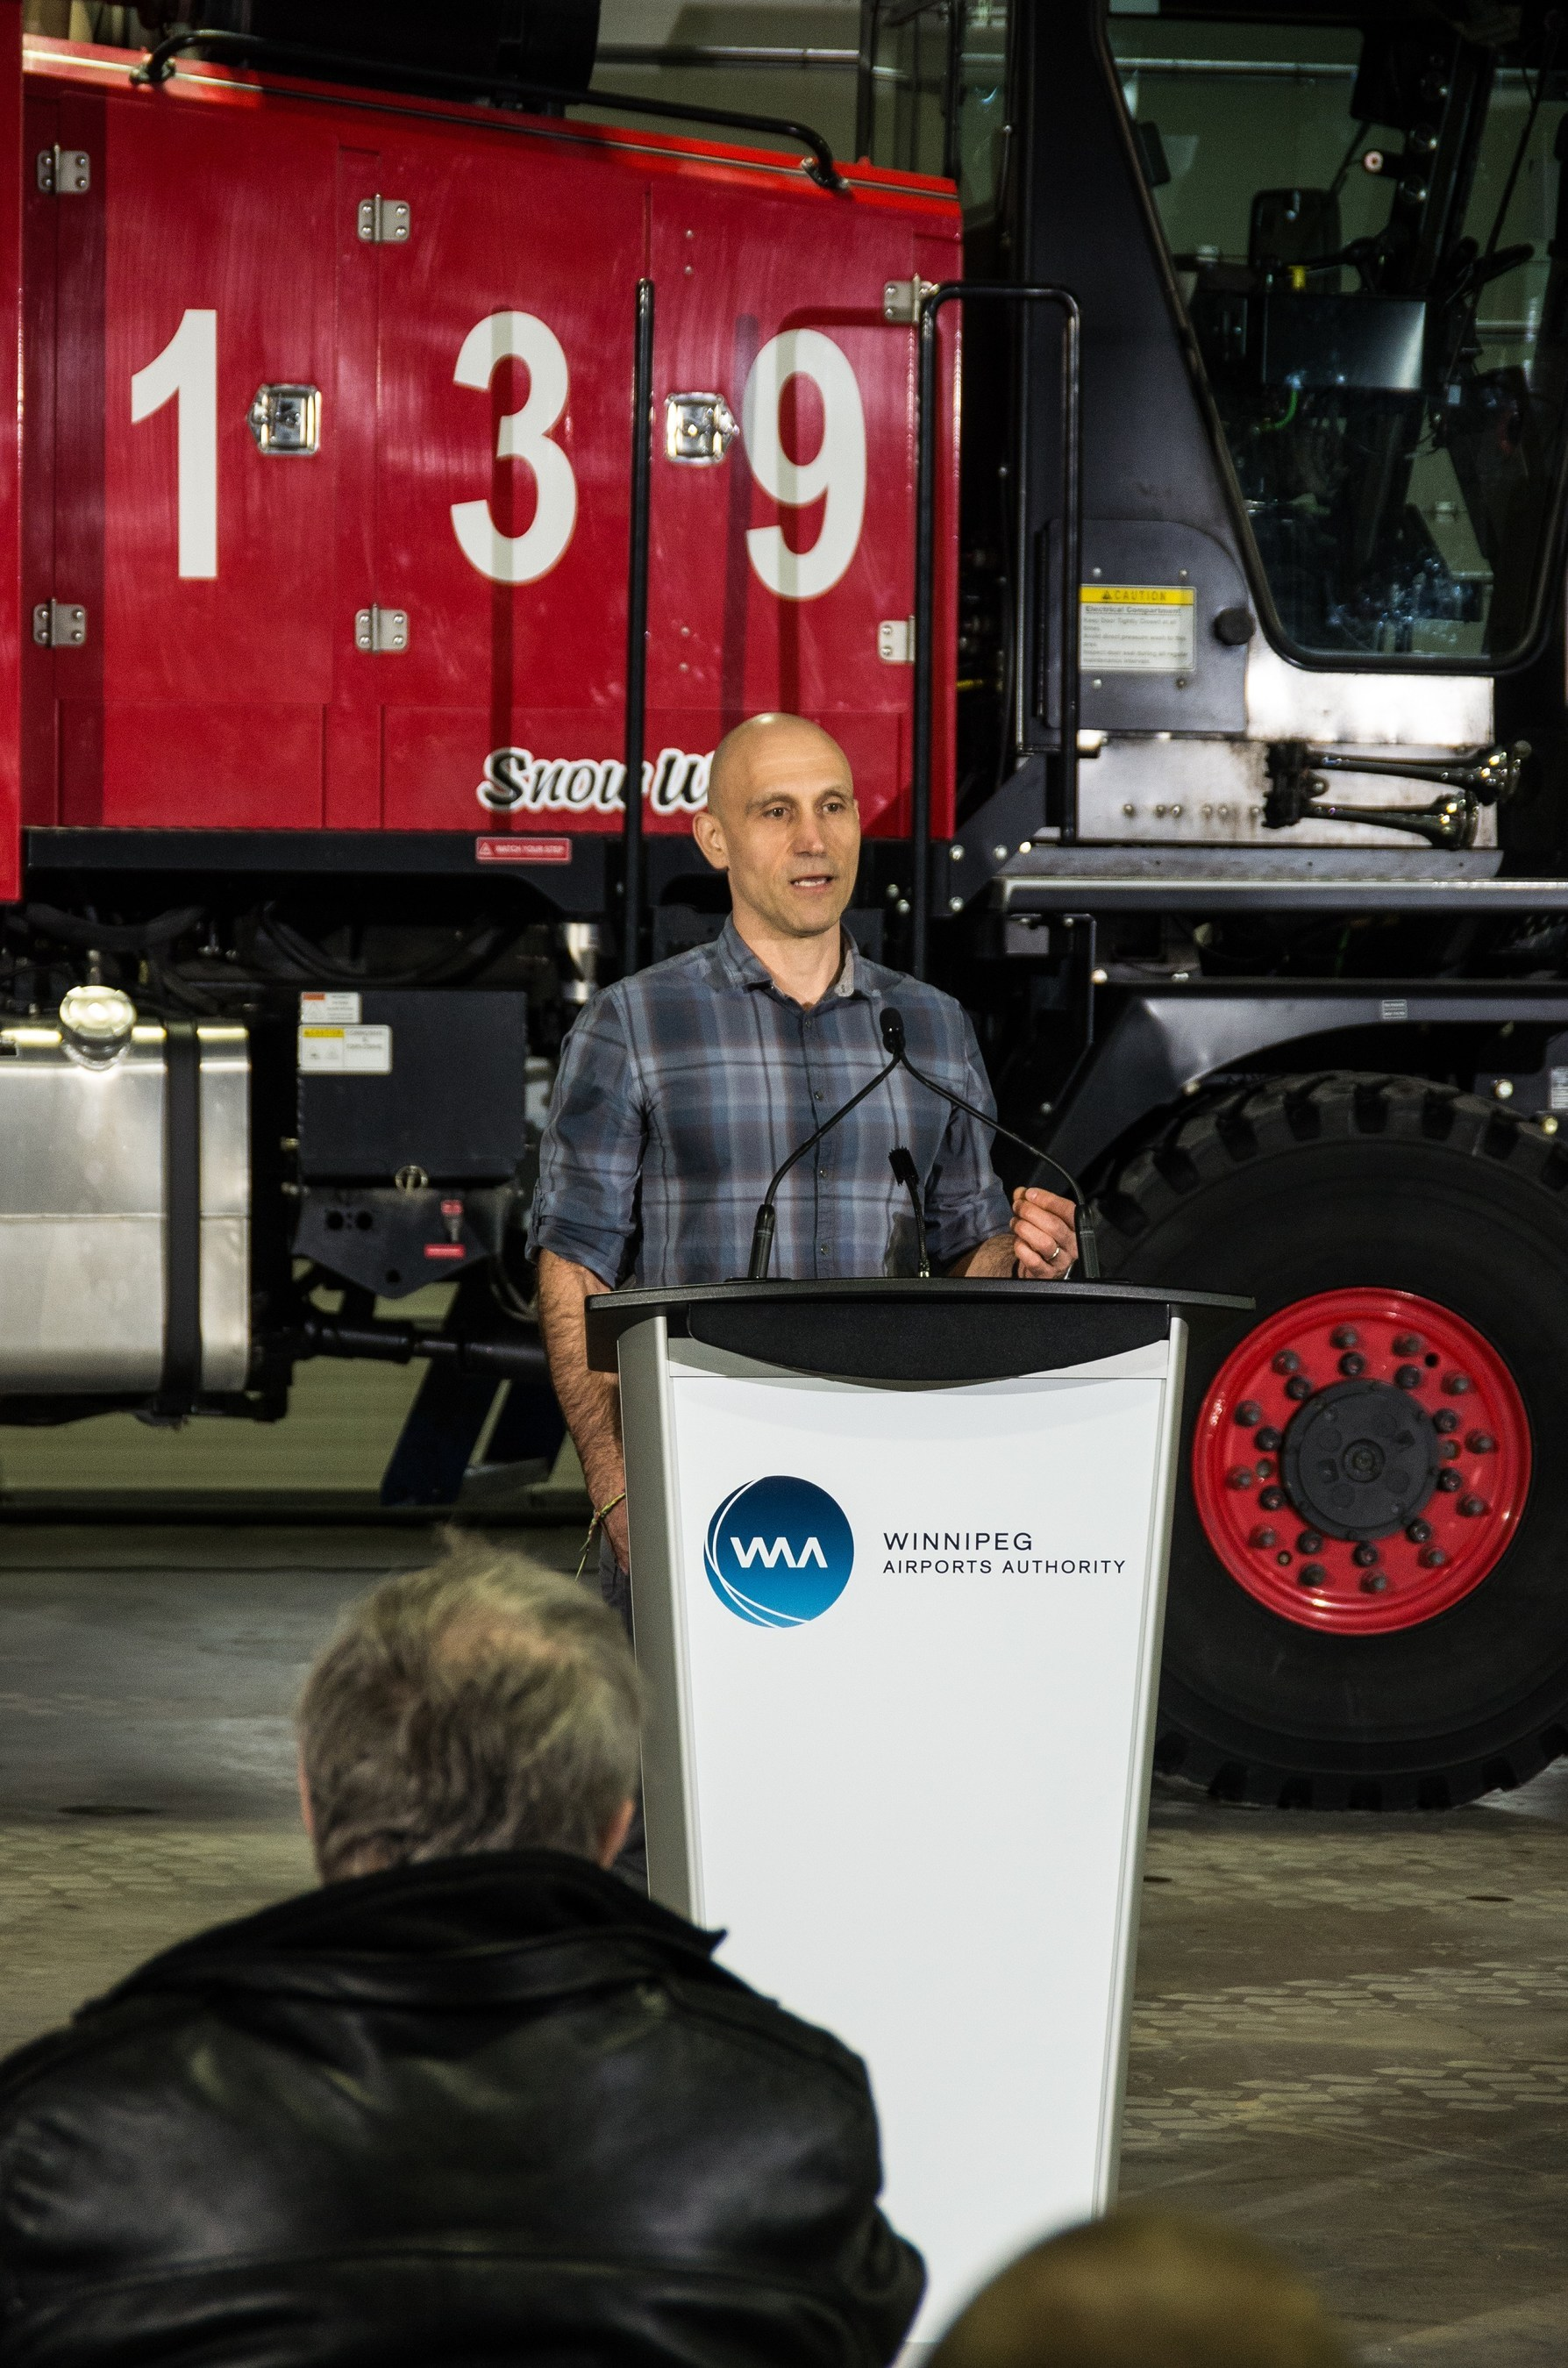 Shawn Schaerer, President and Founder of Northstar Robotics, a company partner in this venture. (CNW Group/Winnipeg Airports Authority Inc.)